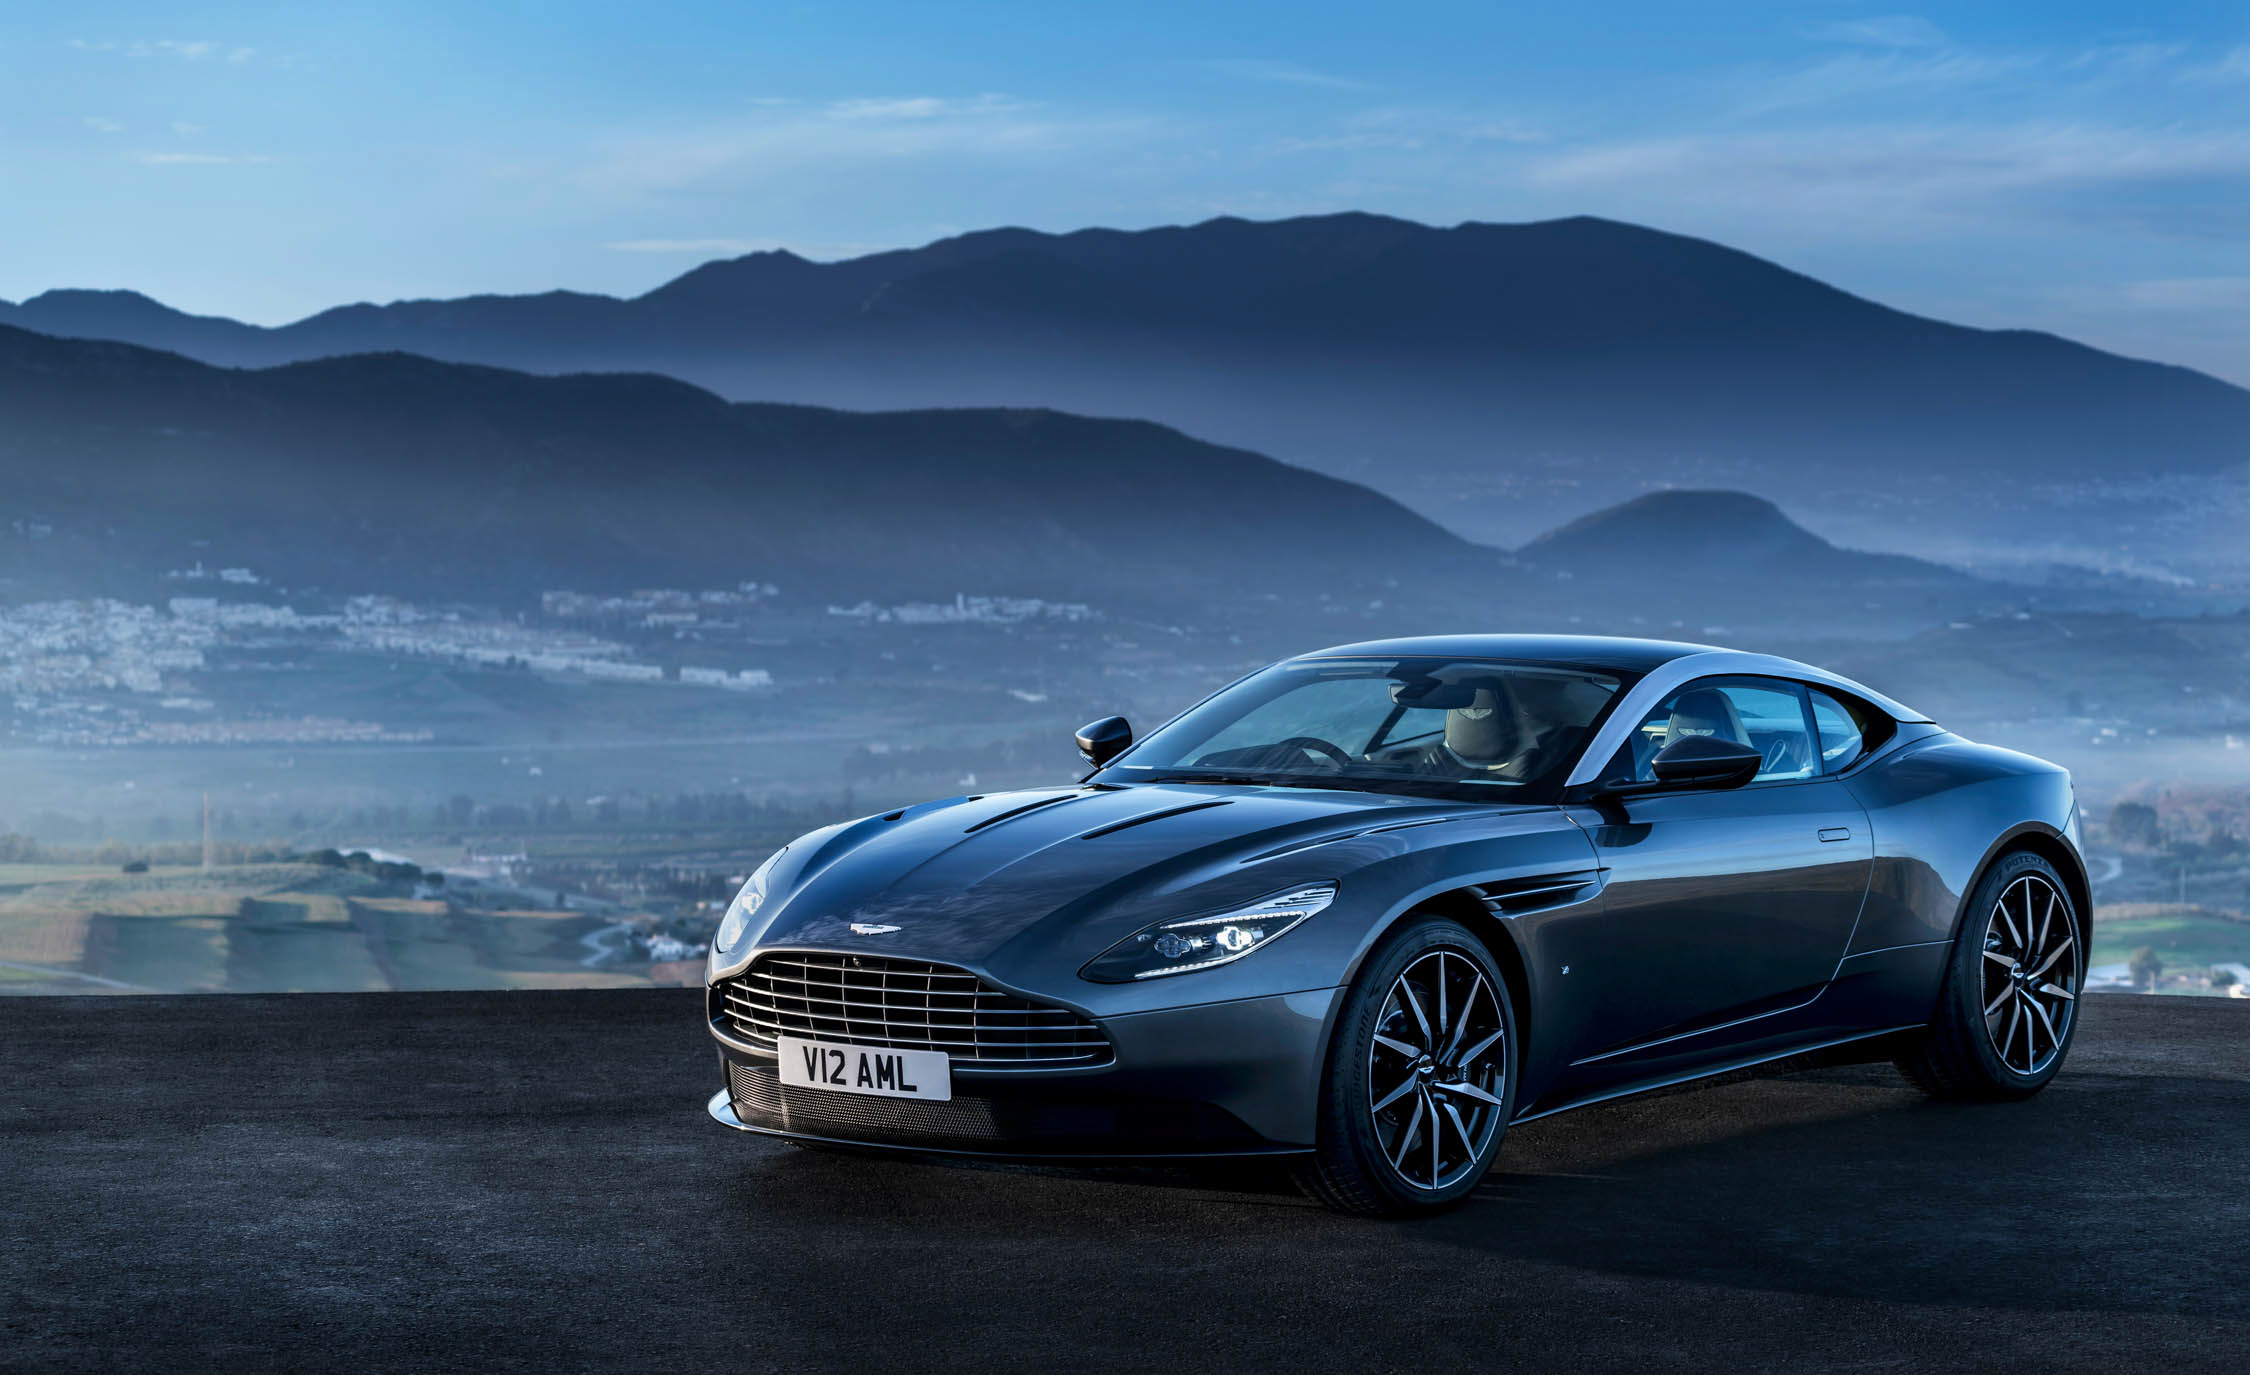 2017 Aston Martin Db11 Wallpaper Hd Photo (View 1 of 22)